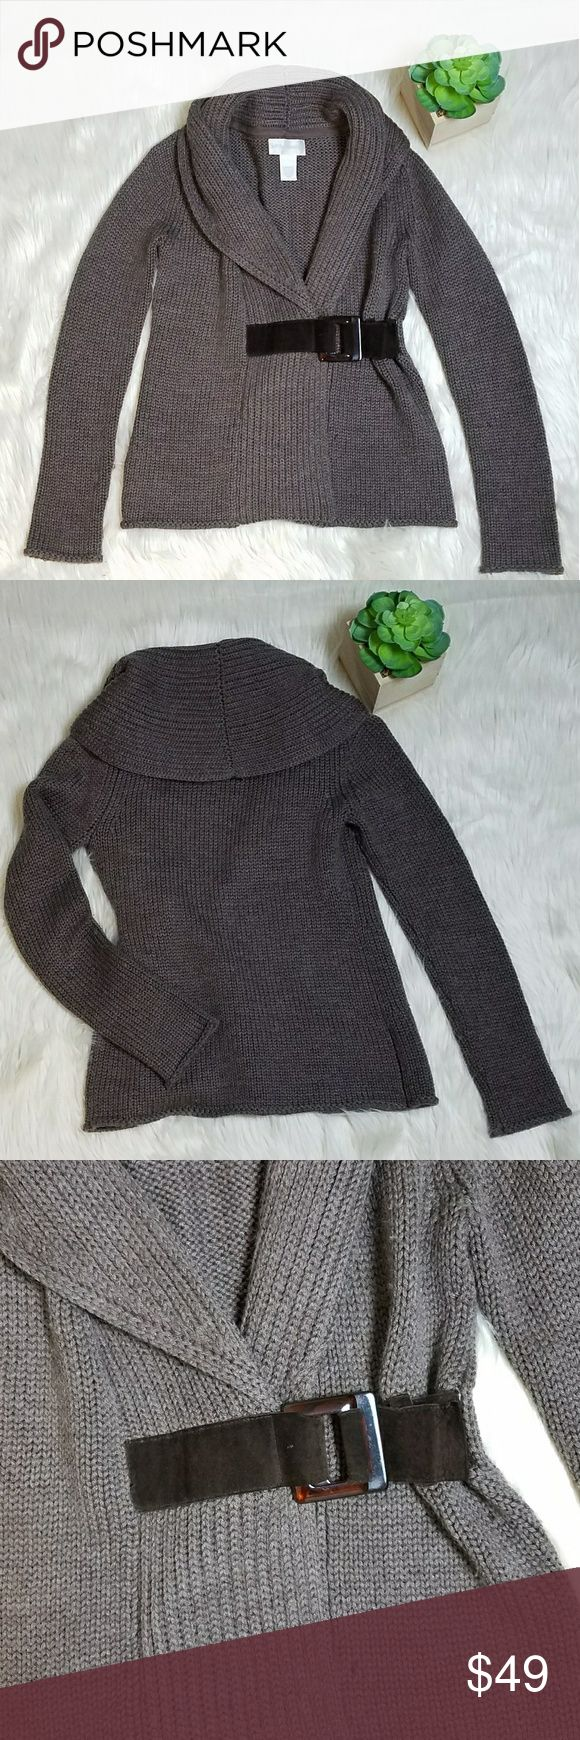 Soft Surroundings Brown Belted Cardigan Sweater Soft Surroundings Brown/Taupe Belted Cardigan Sweater   Size X small   Wool blend belted cardigan sweater with a foldover cowl neck Soft Surroundings Sweaters Cardigans